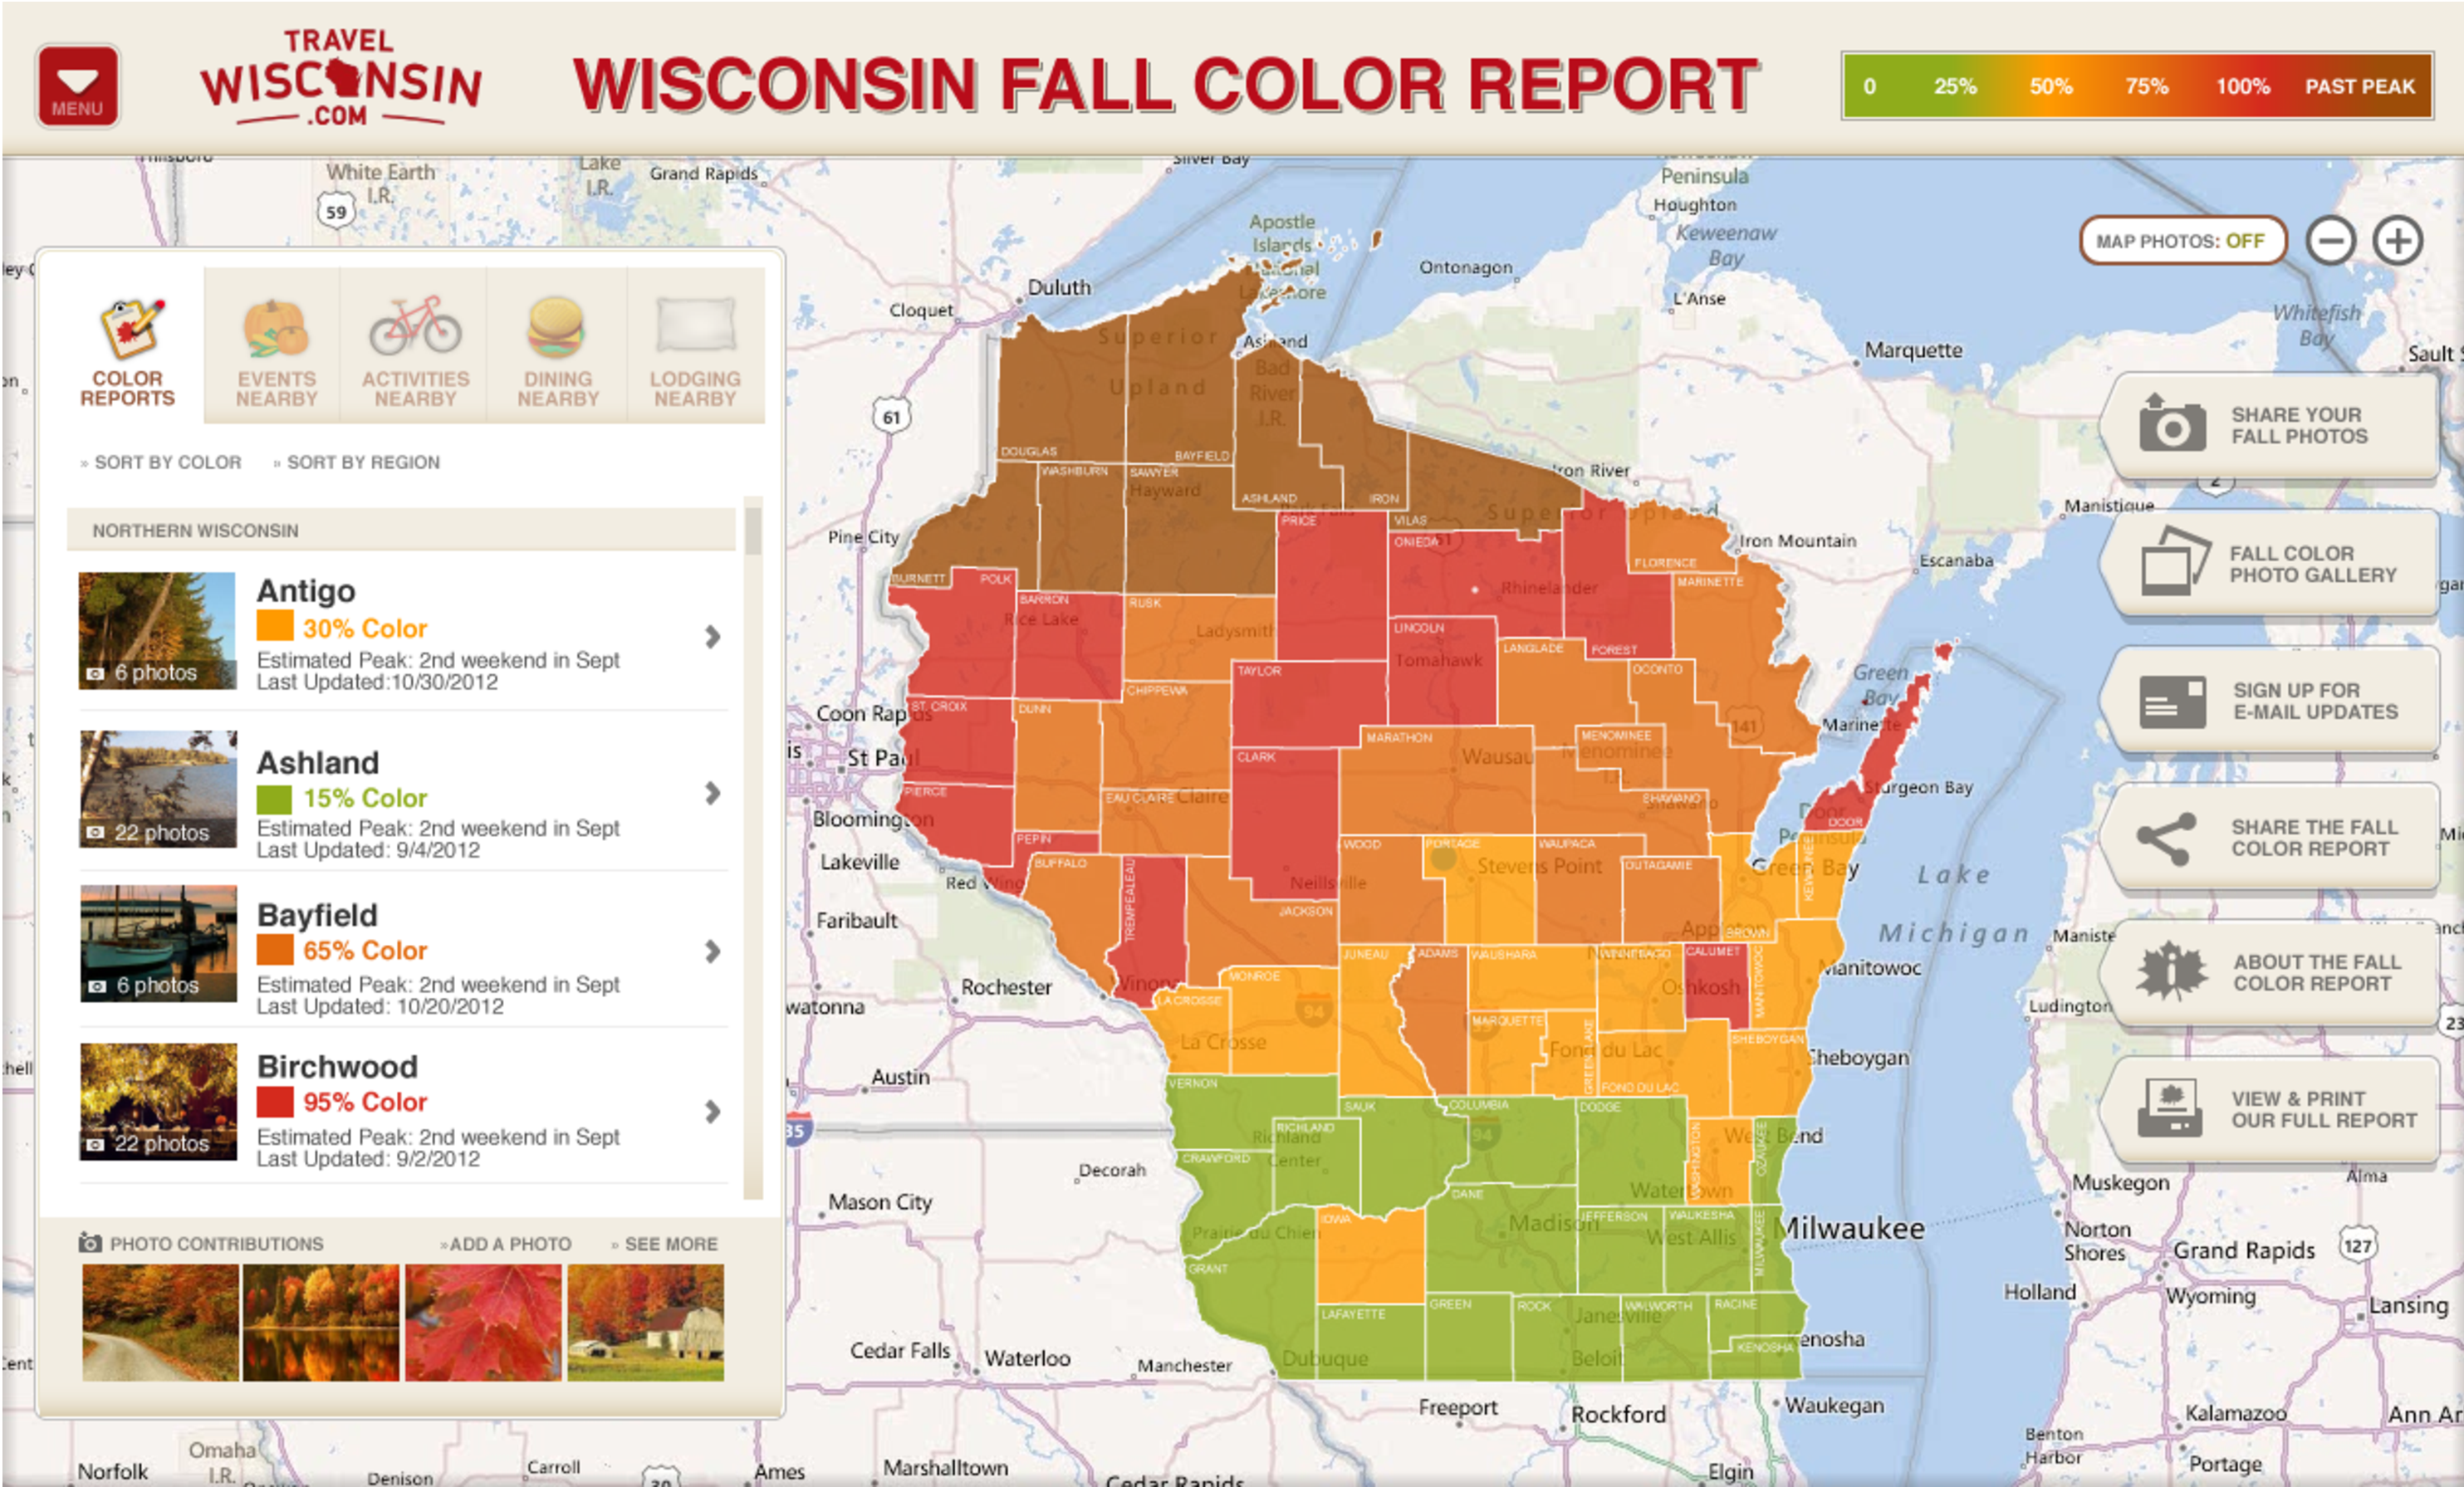 Travel Wisconsin Fall Color Report